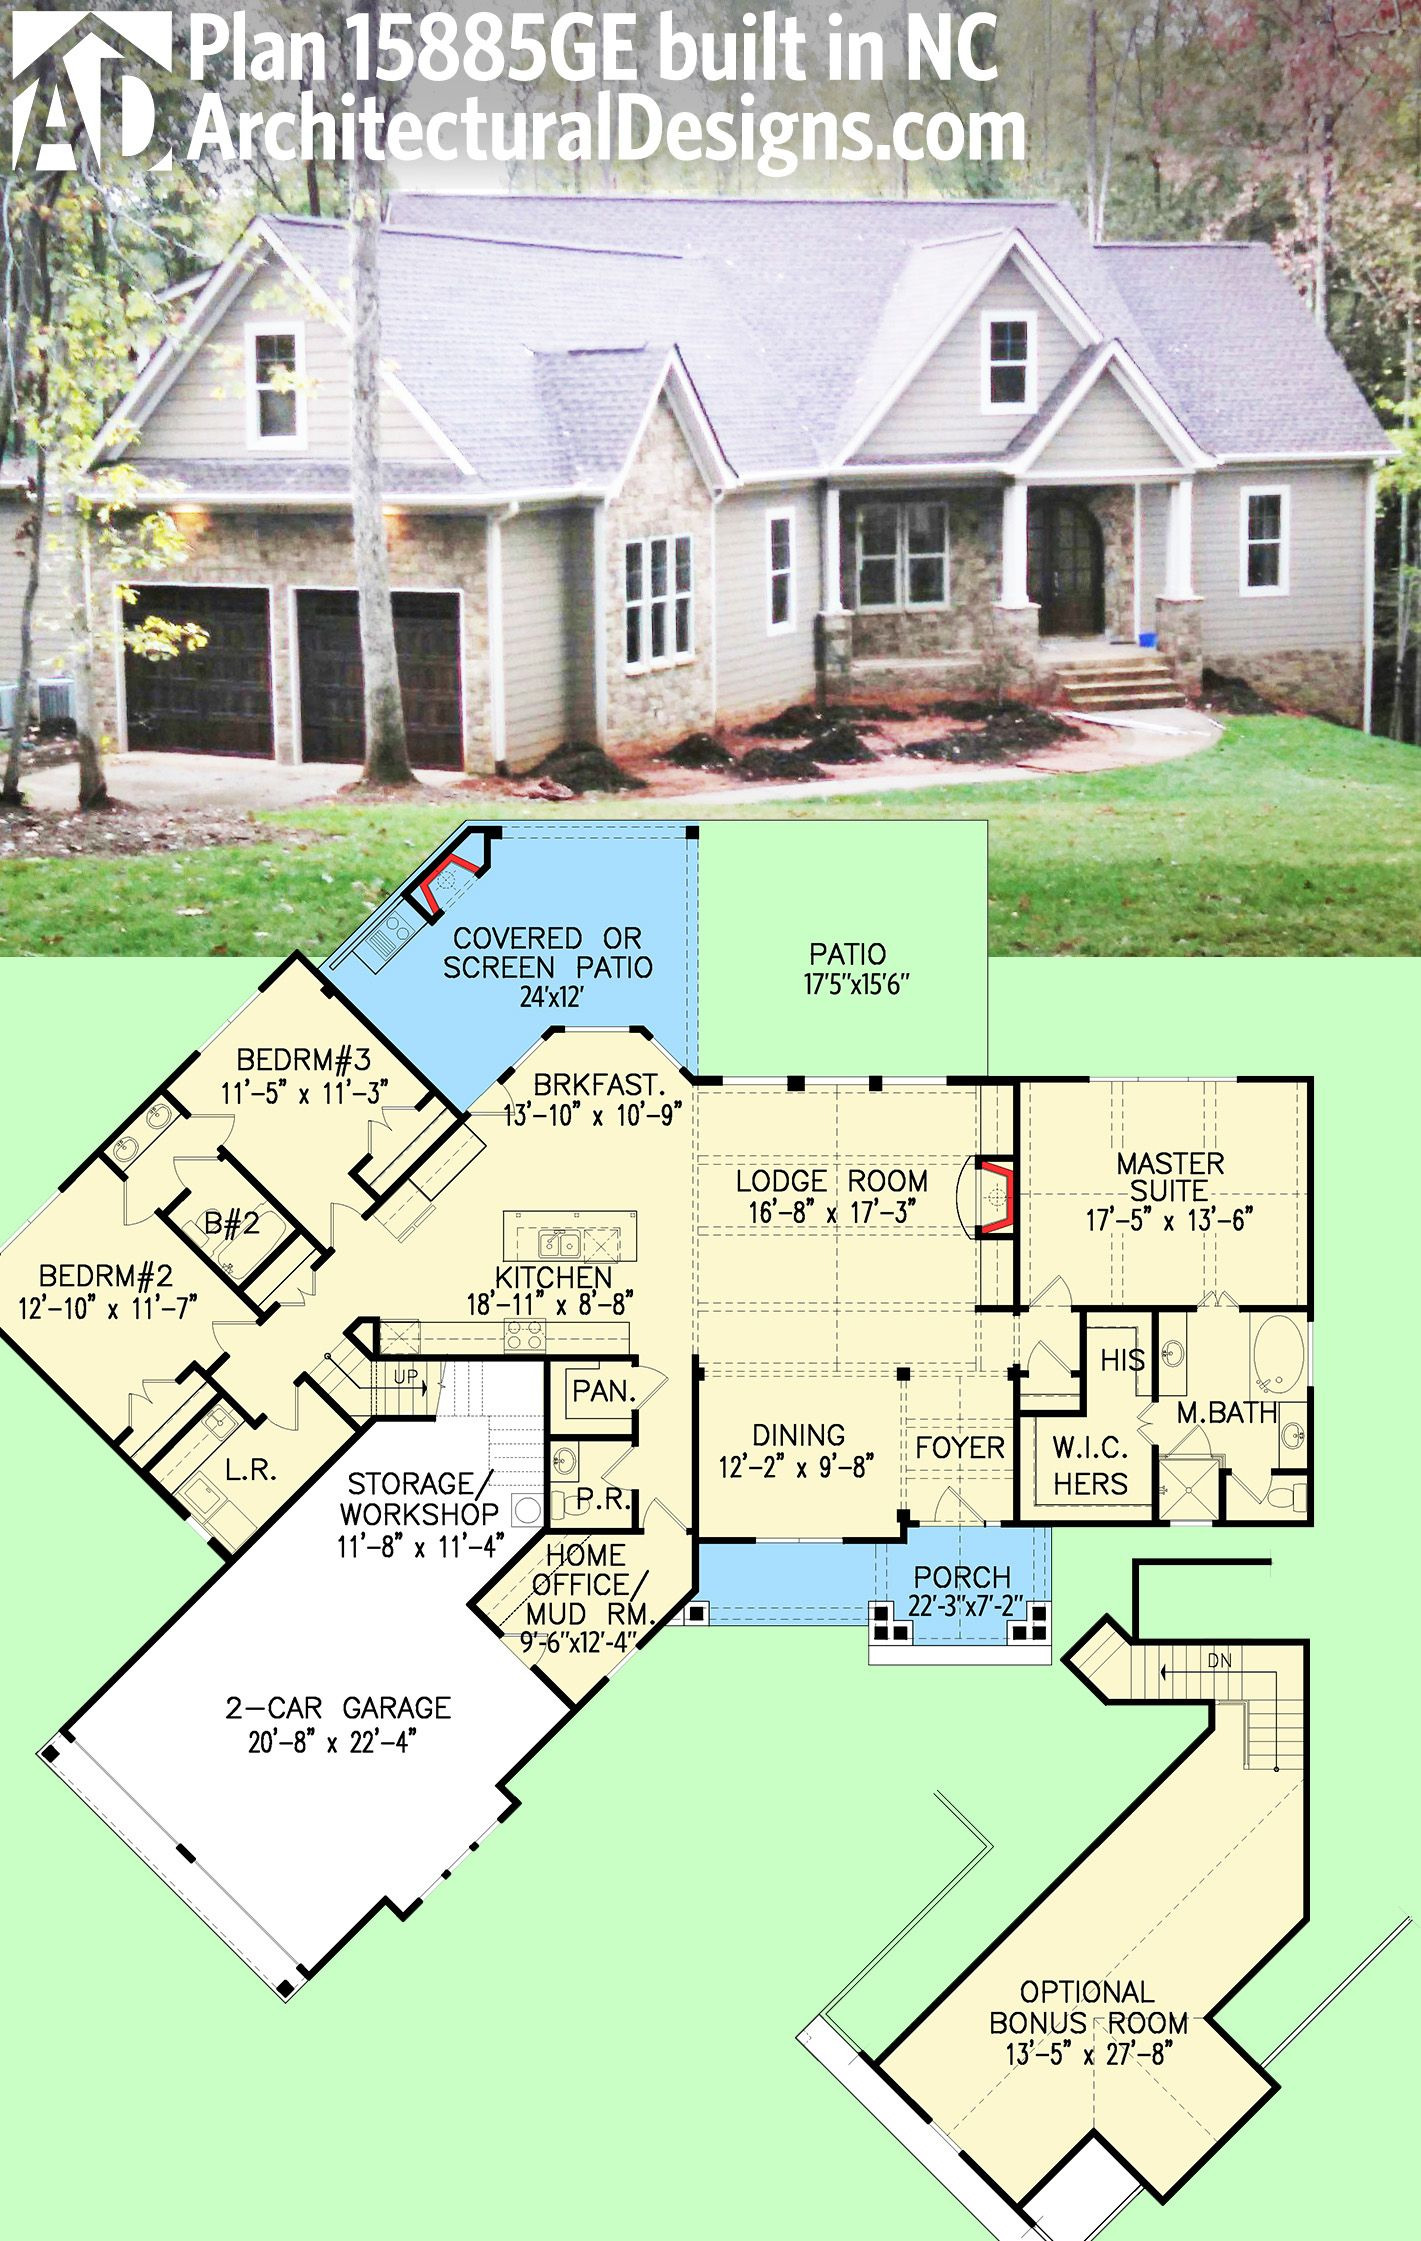 Affordable Home Designs to Build New Plan Ge Affordable Gable Roofed Ranch Home Plan